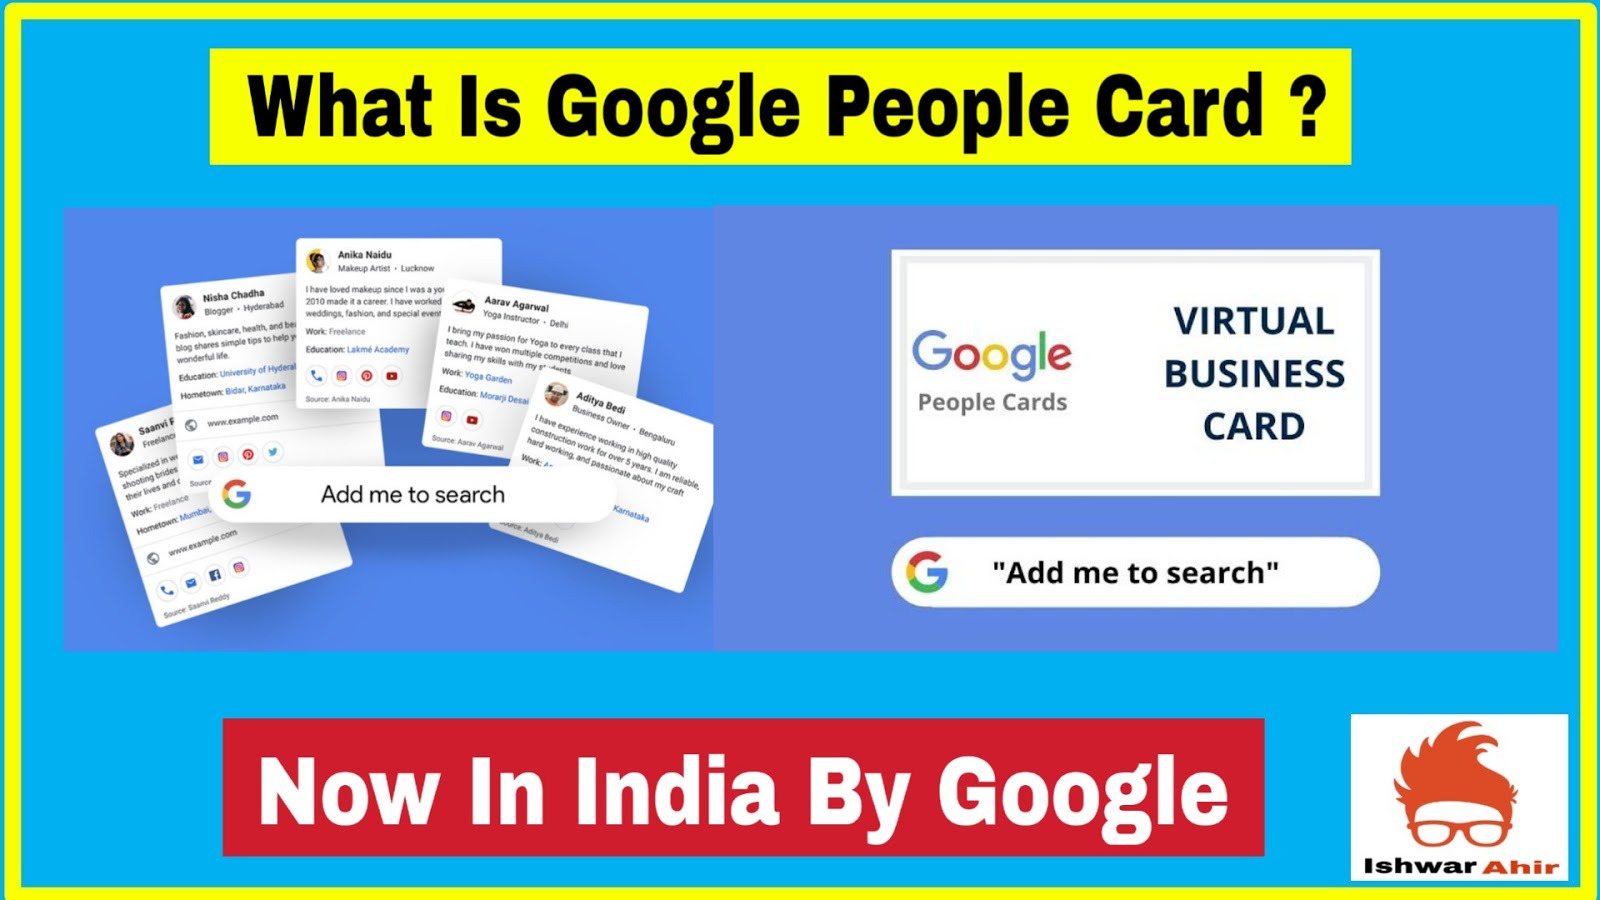 What is Google People Card